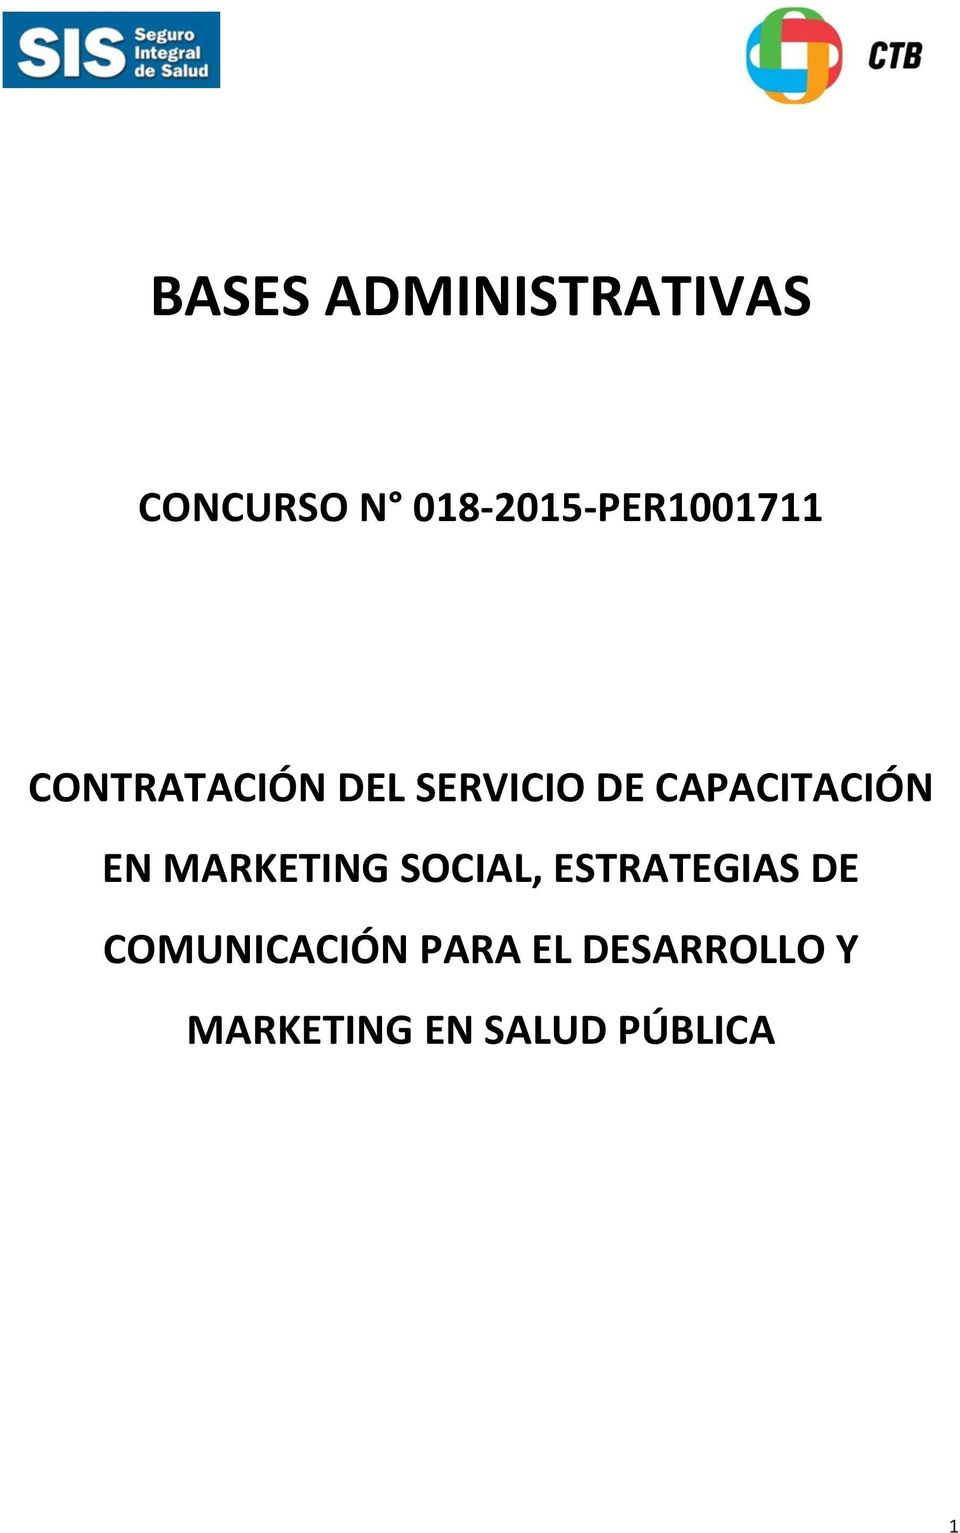 CAPACITACIÓN EN MARKETING SOCIAL, ESTRATEGIAS DE